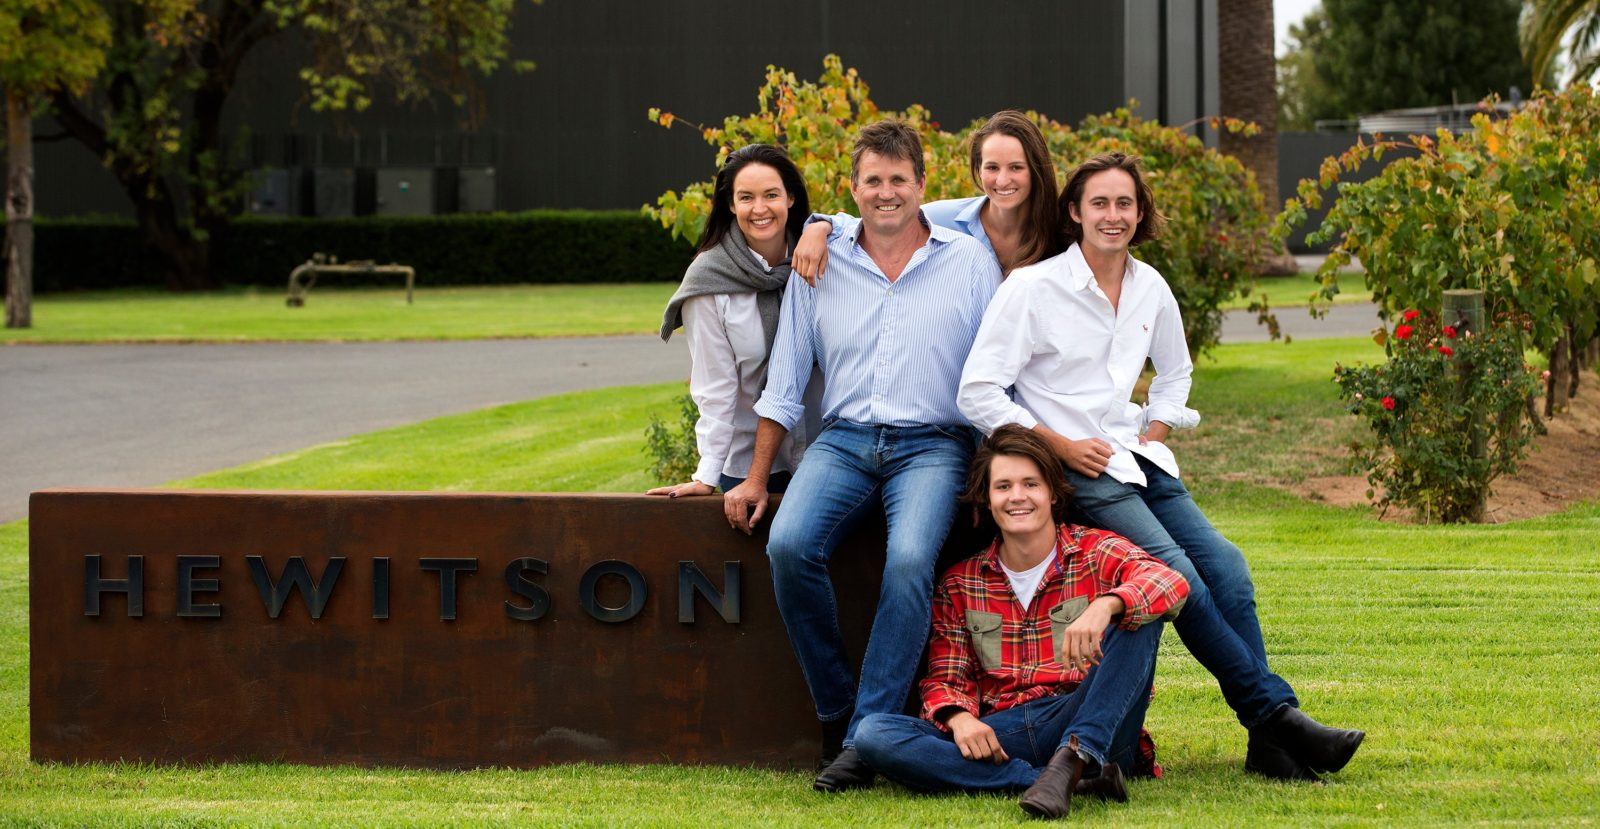 Hewitson Family